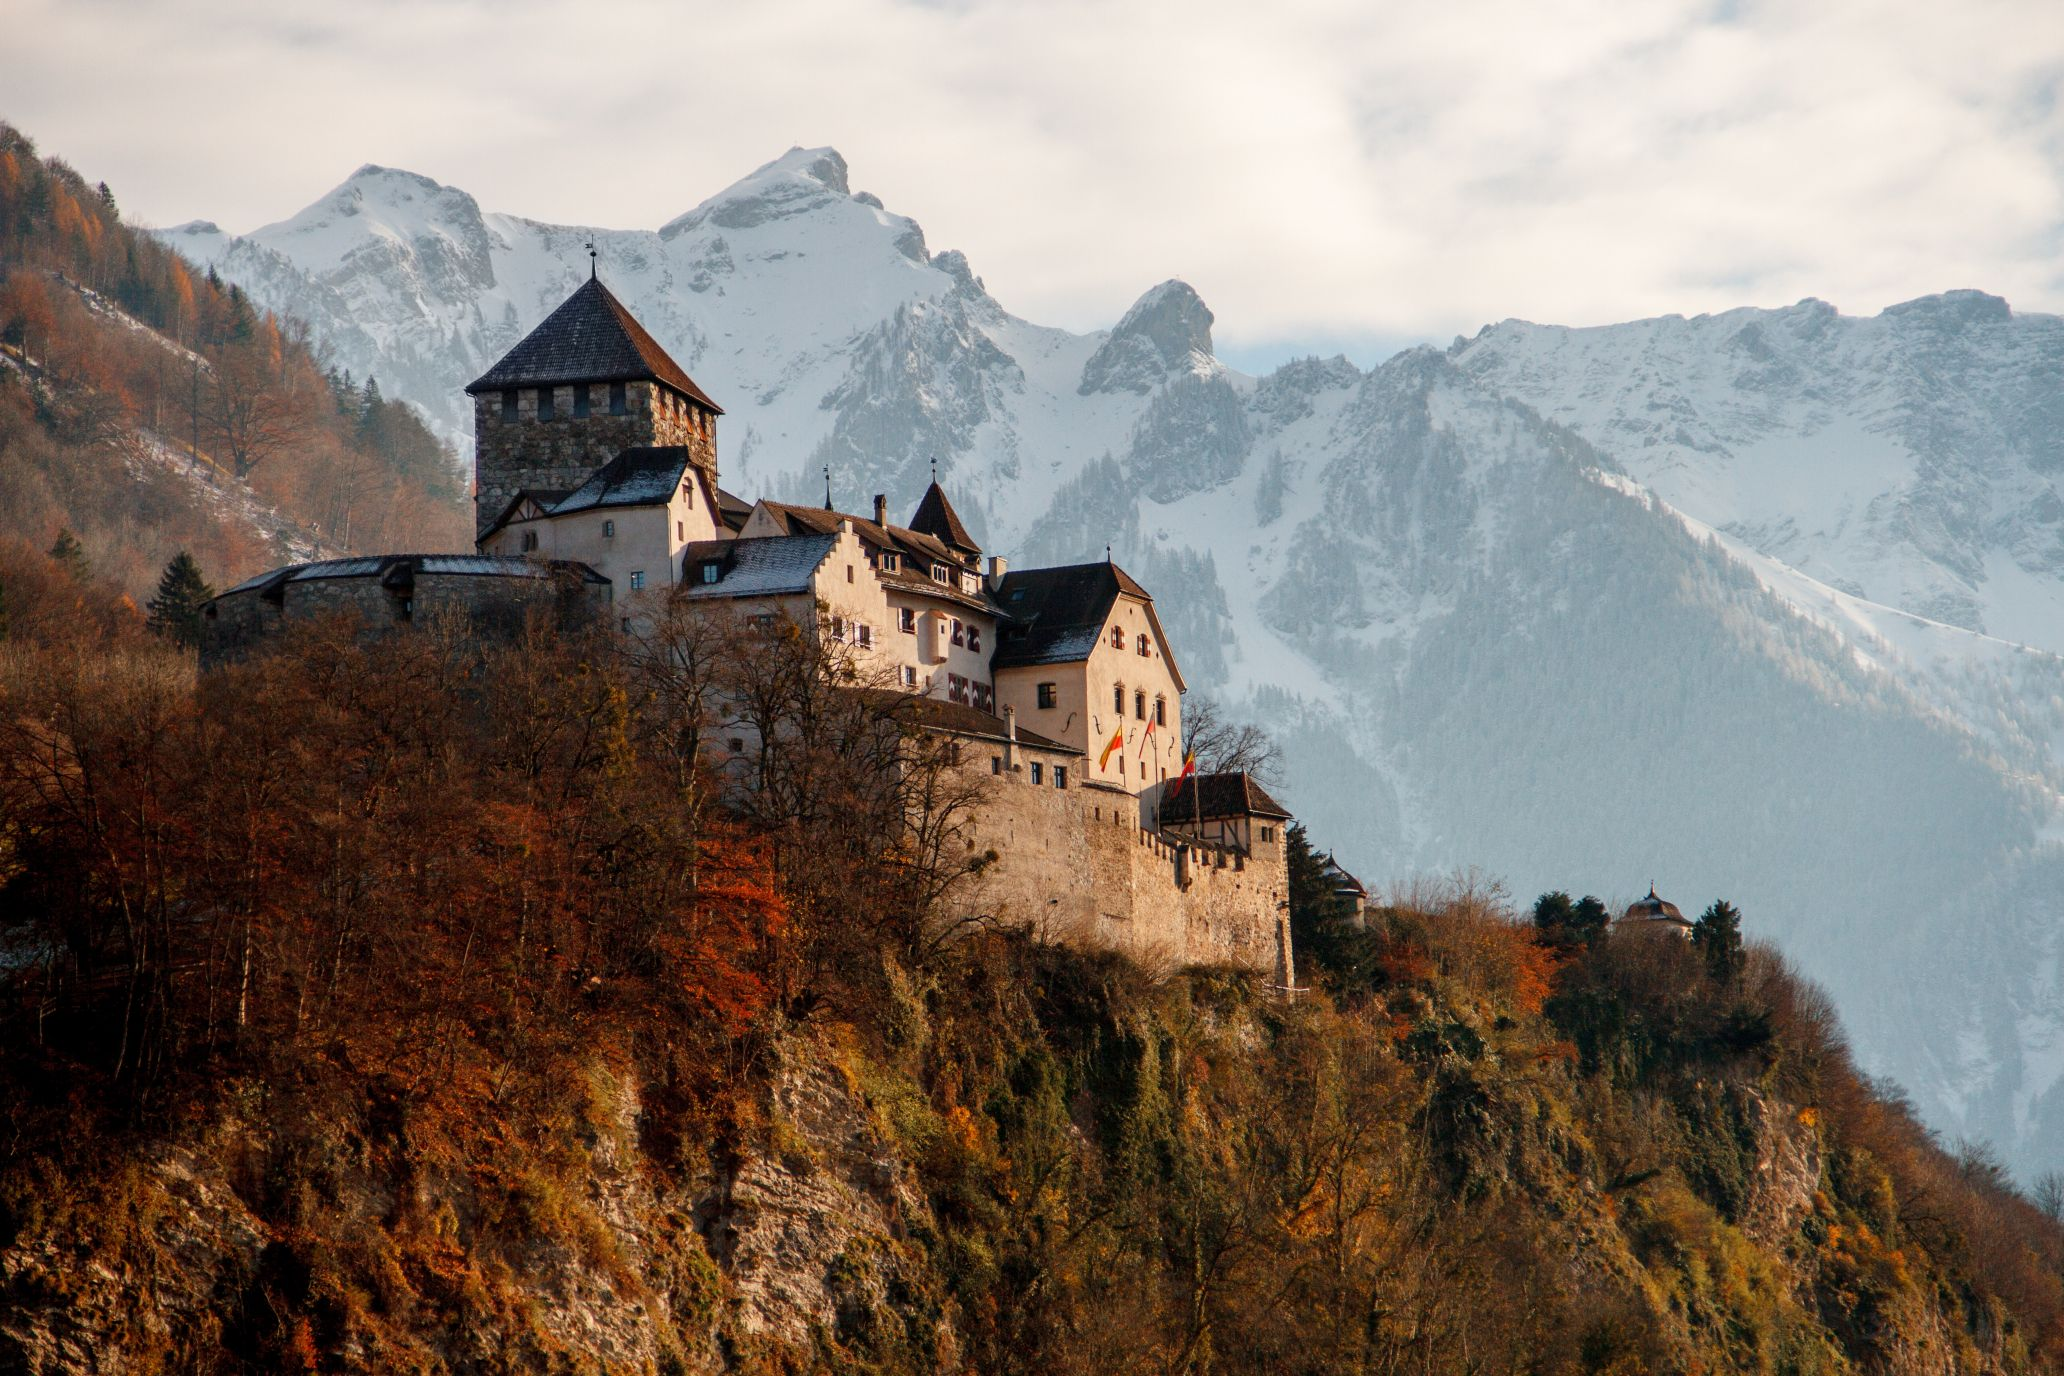 The castle of Vaduz in Liechtenstein